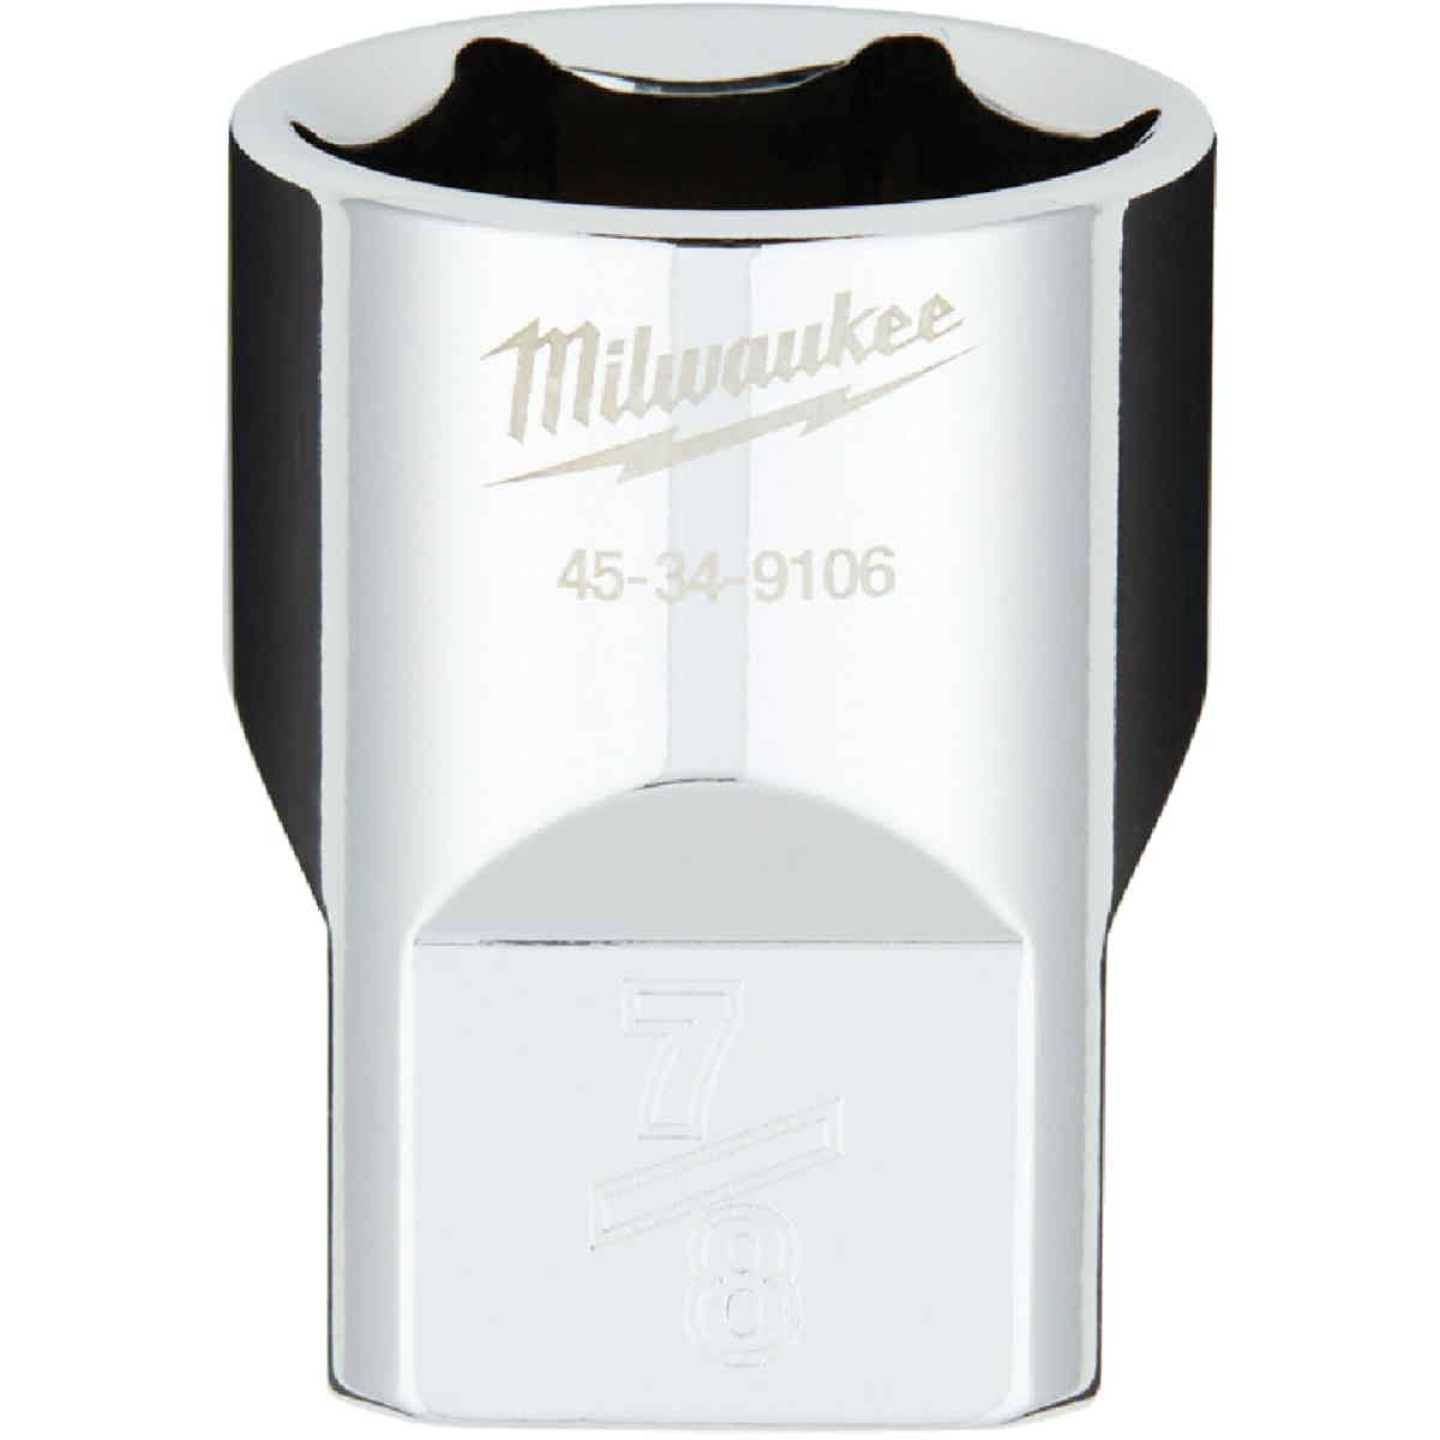 Milwaukee 1/2 In. Drive 7/8 In. 6-Point Shallow Standard Socket with FOUR FLAT Sides Image 1